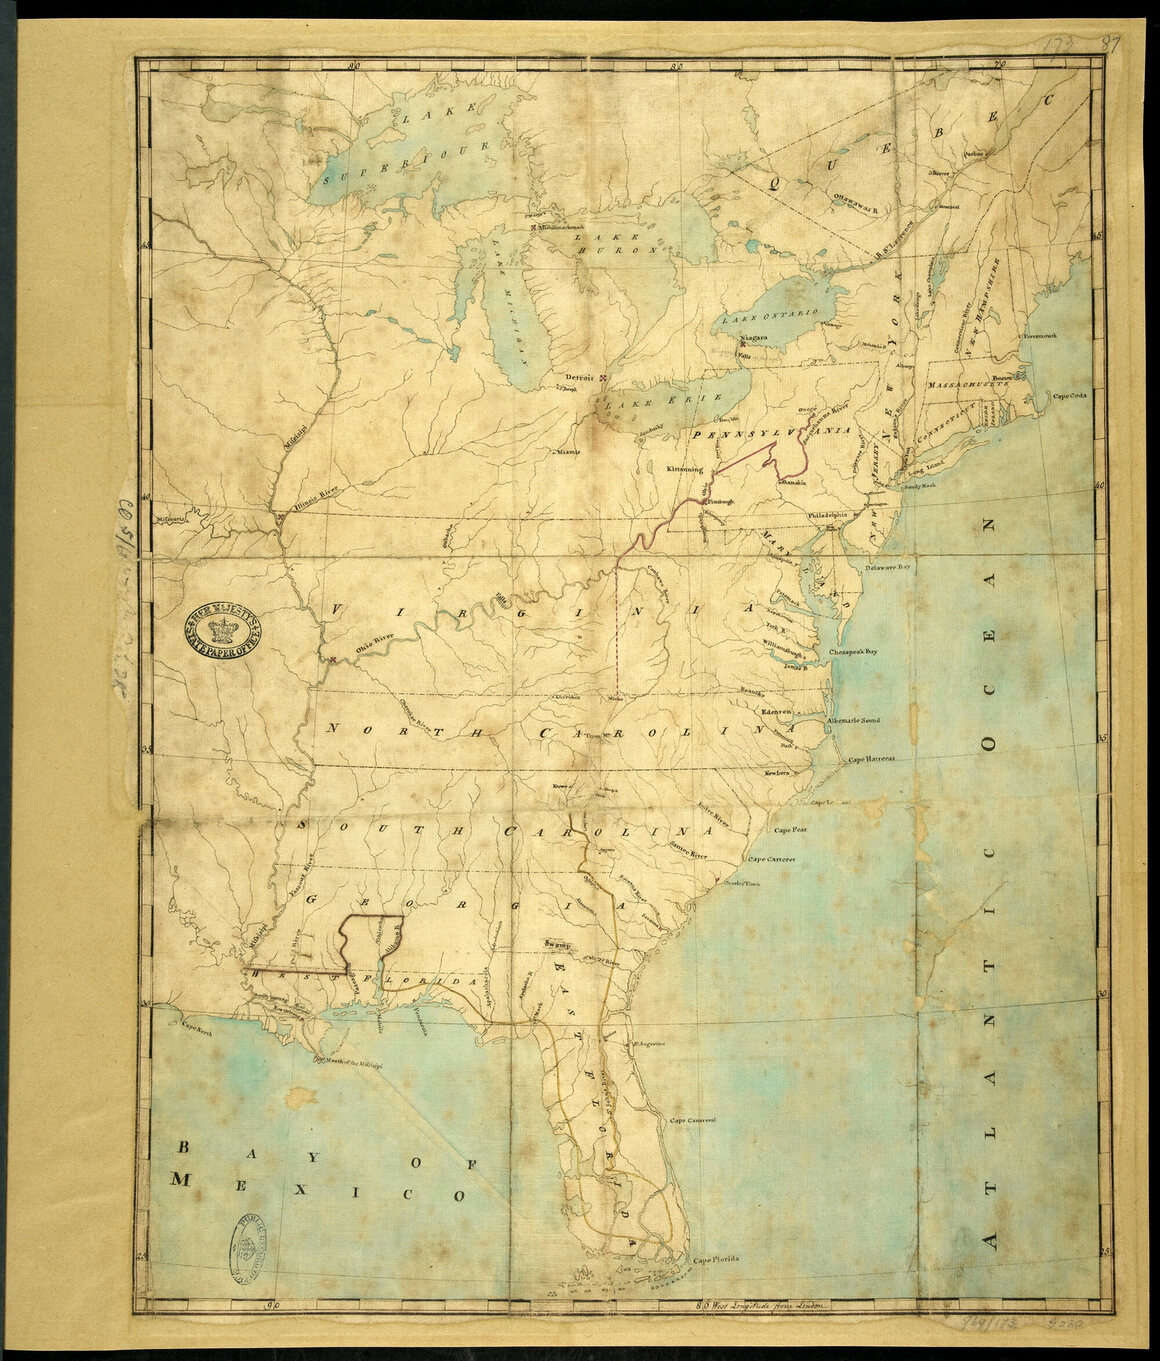 After five years of negotiations, government officials presented this map, showing the boundary lines between the British colonies and the country of the Six Nations and the Southern Indians, to the King of England, in 1768.